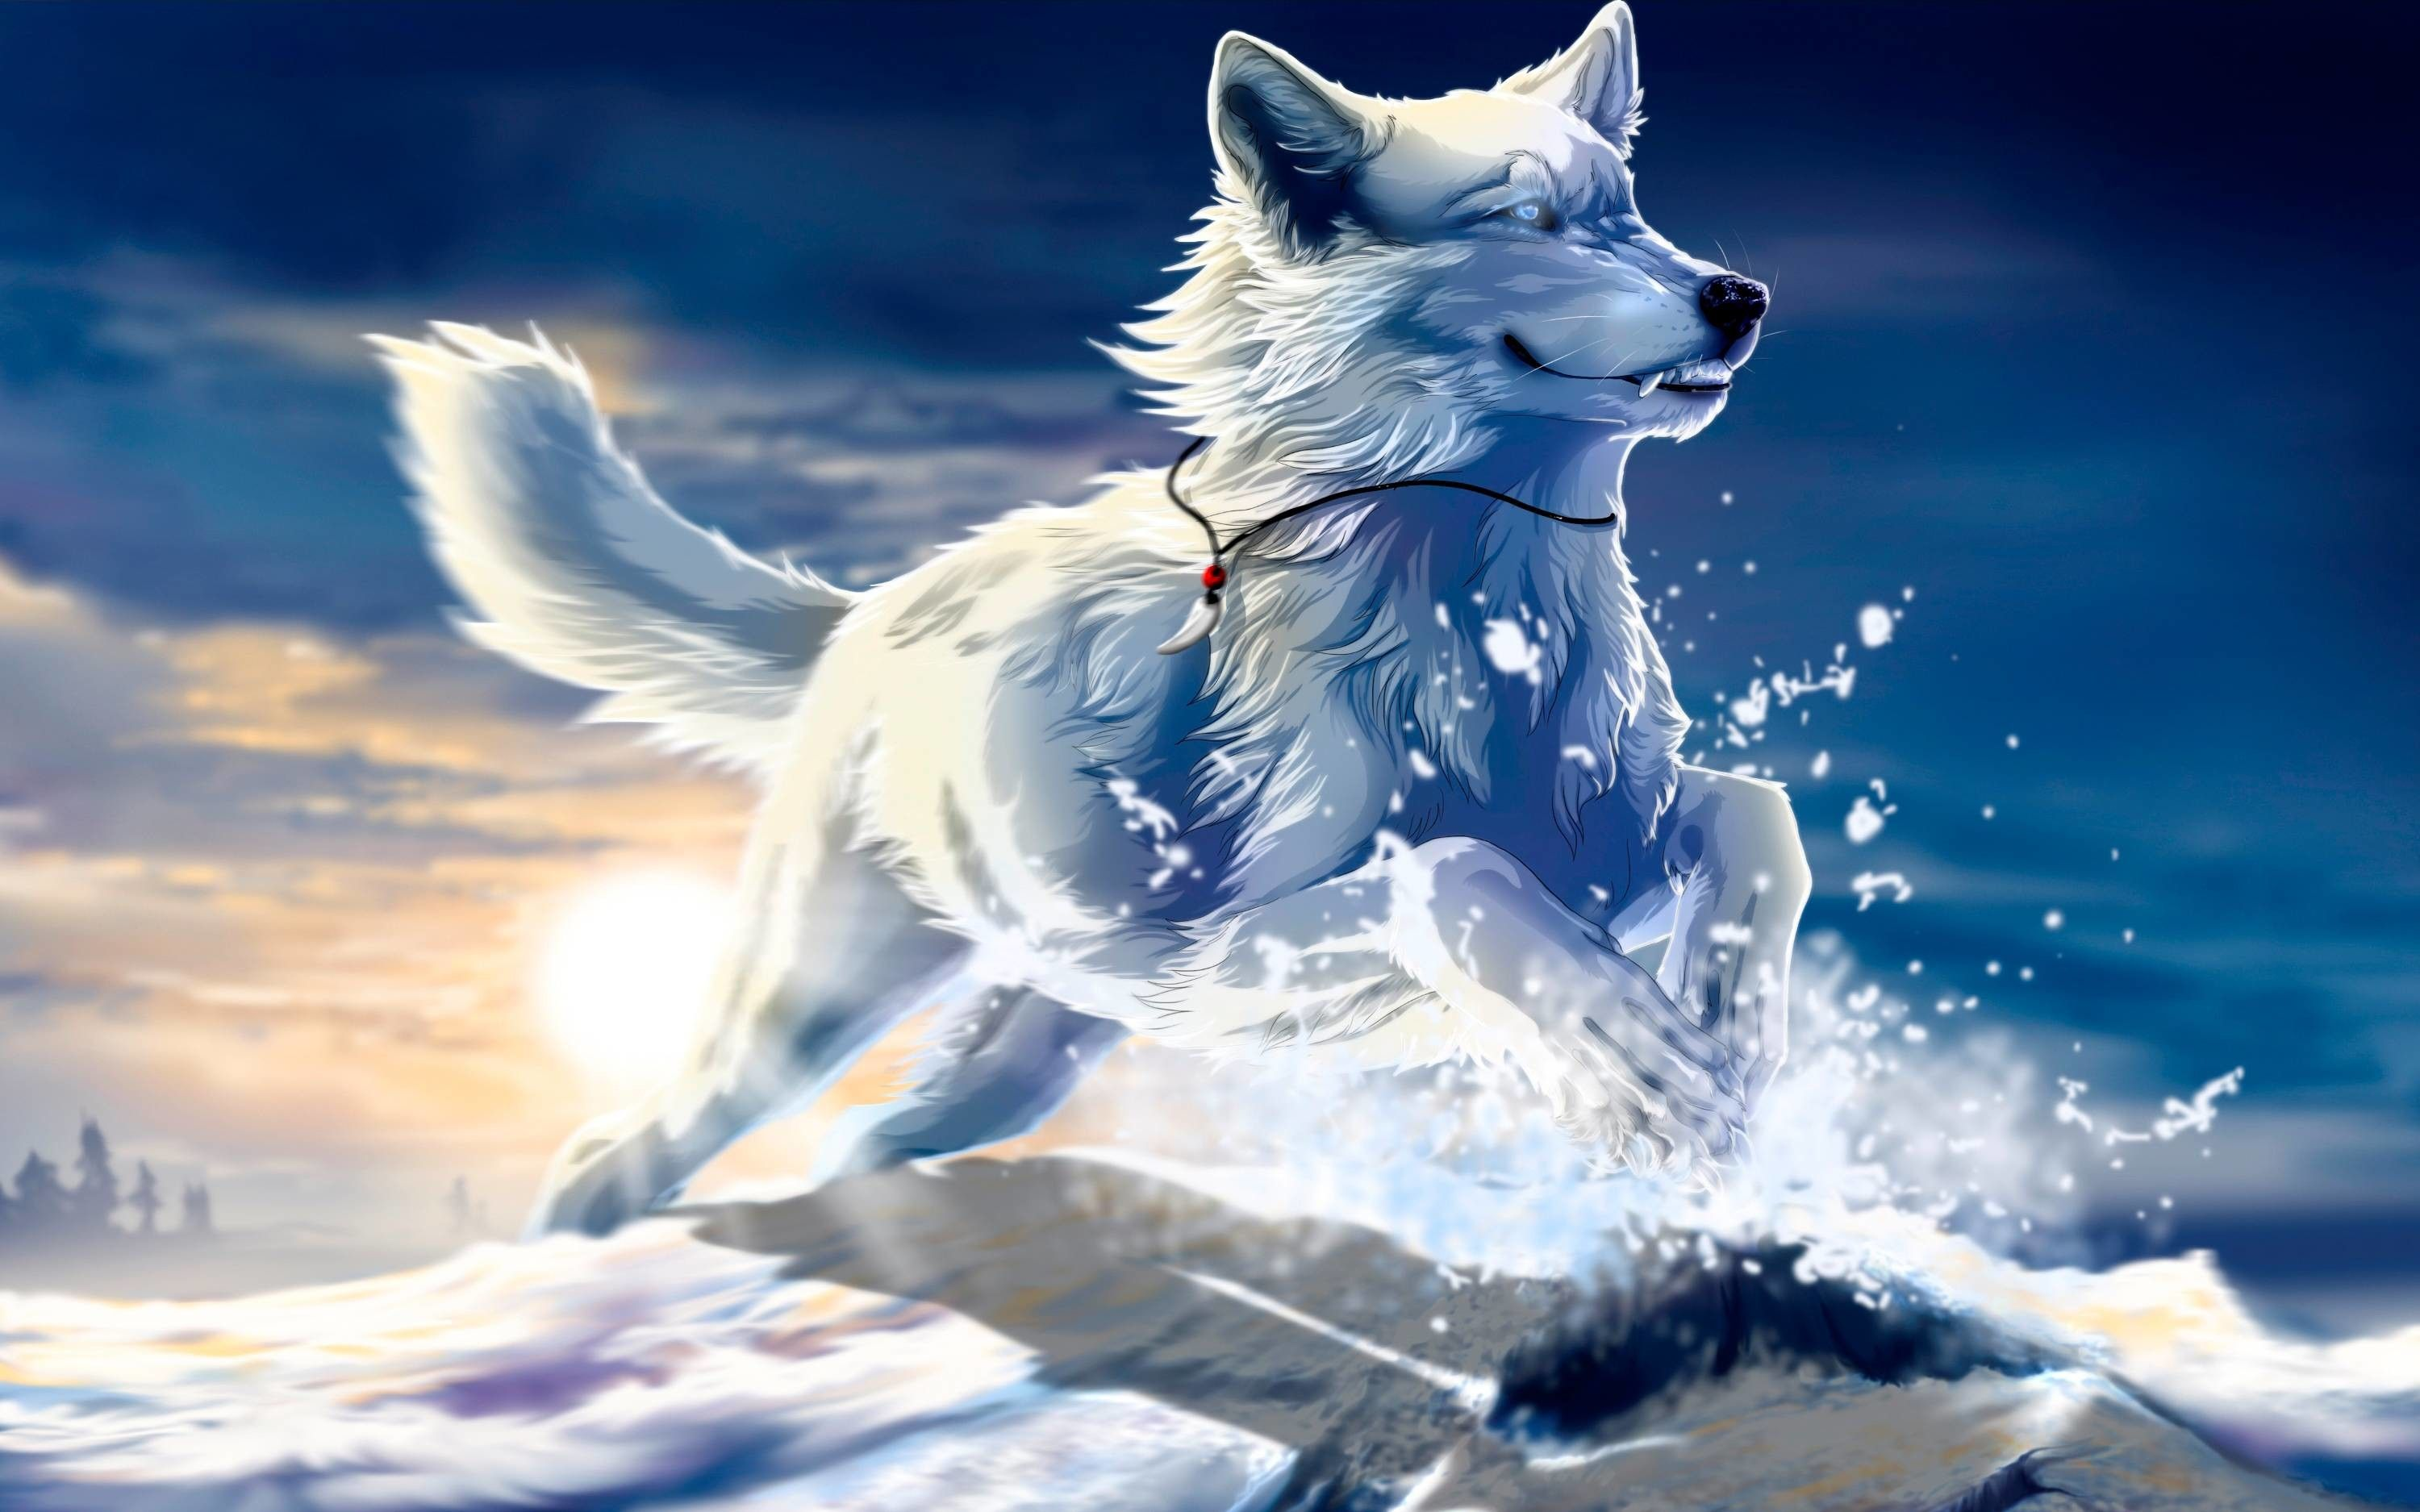 Blue Anime Wolf Wallpapers Top Free Blue Anime Wolf Backgrounds Wallpaperaccess